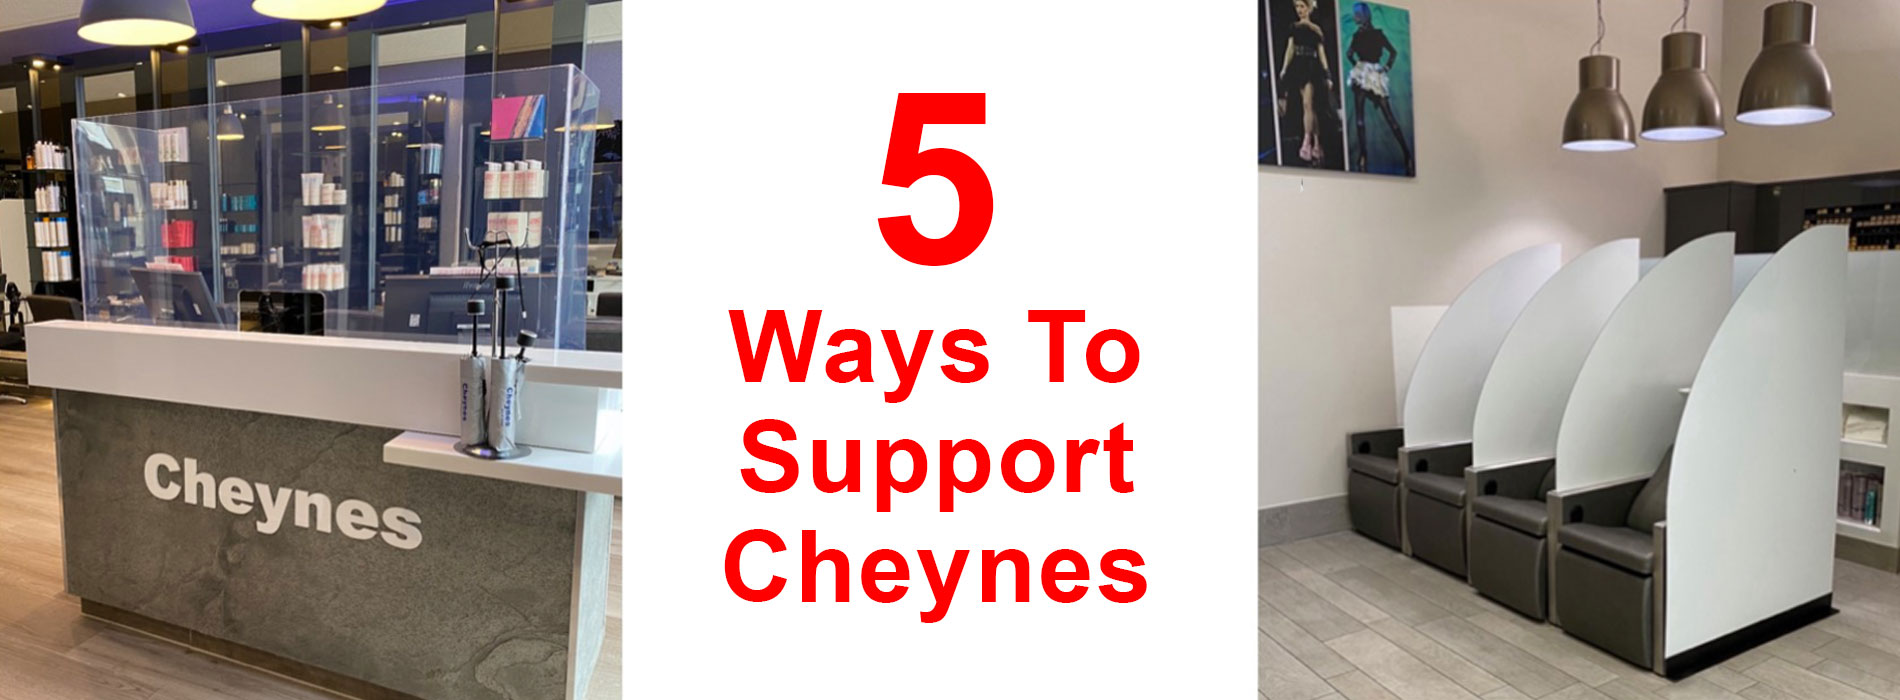 5 ways to support cheynes hair salons in edinburgh during pandemic